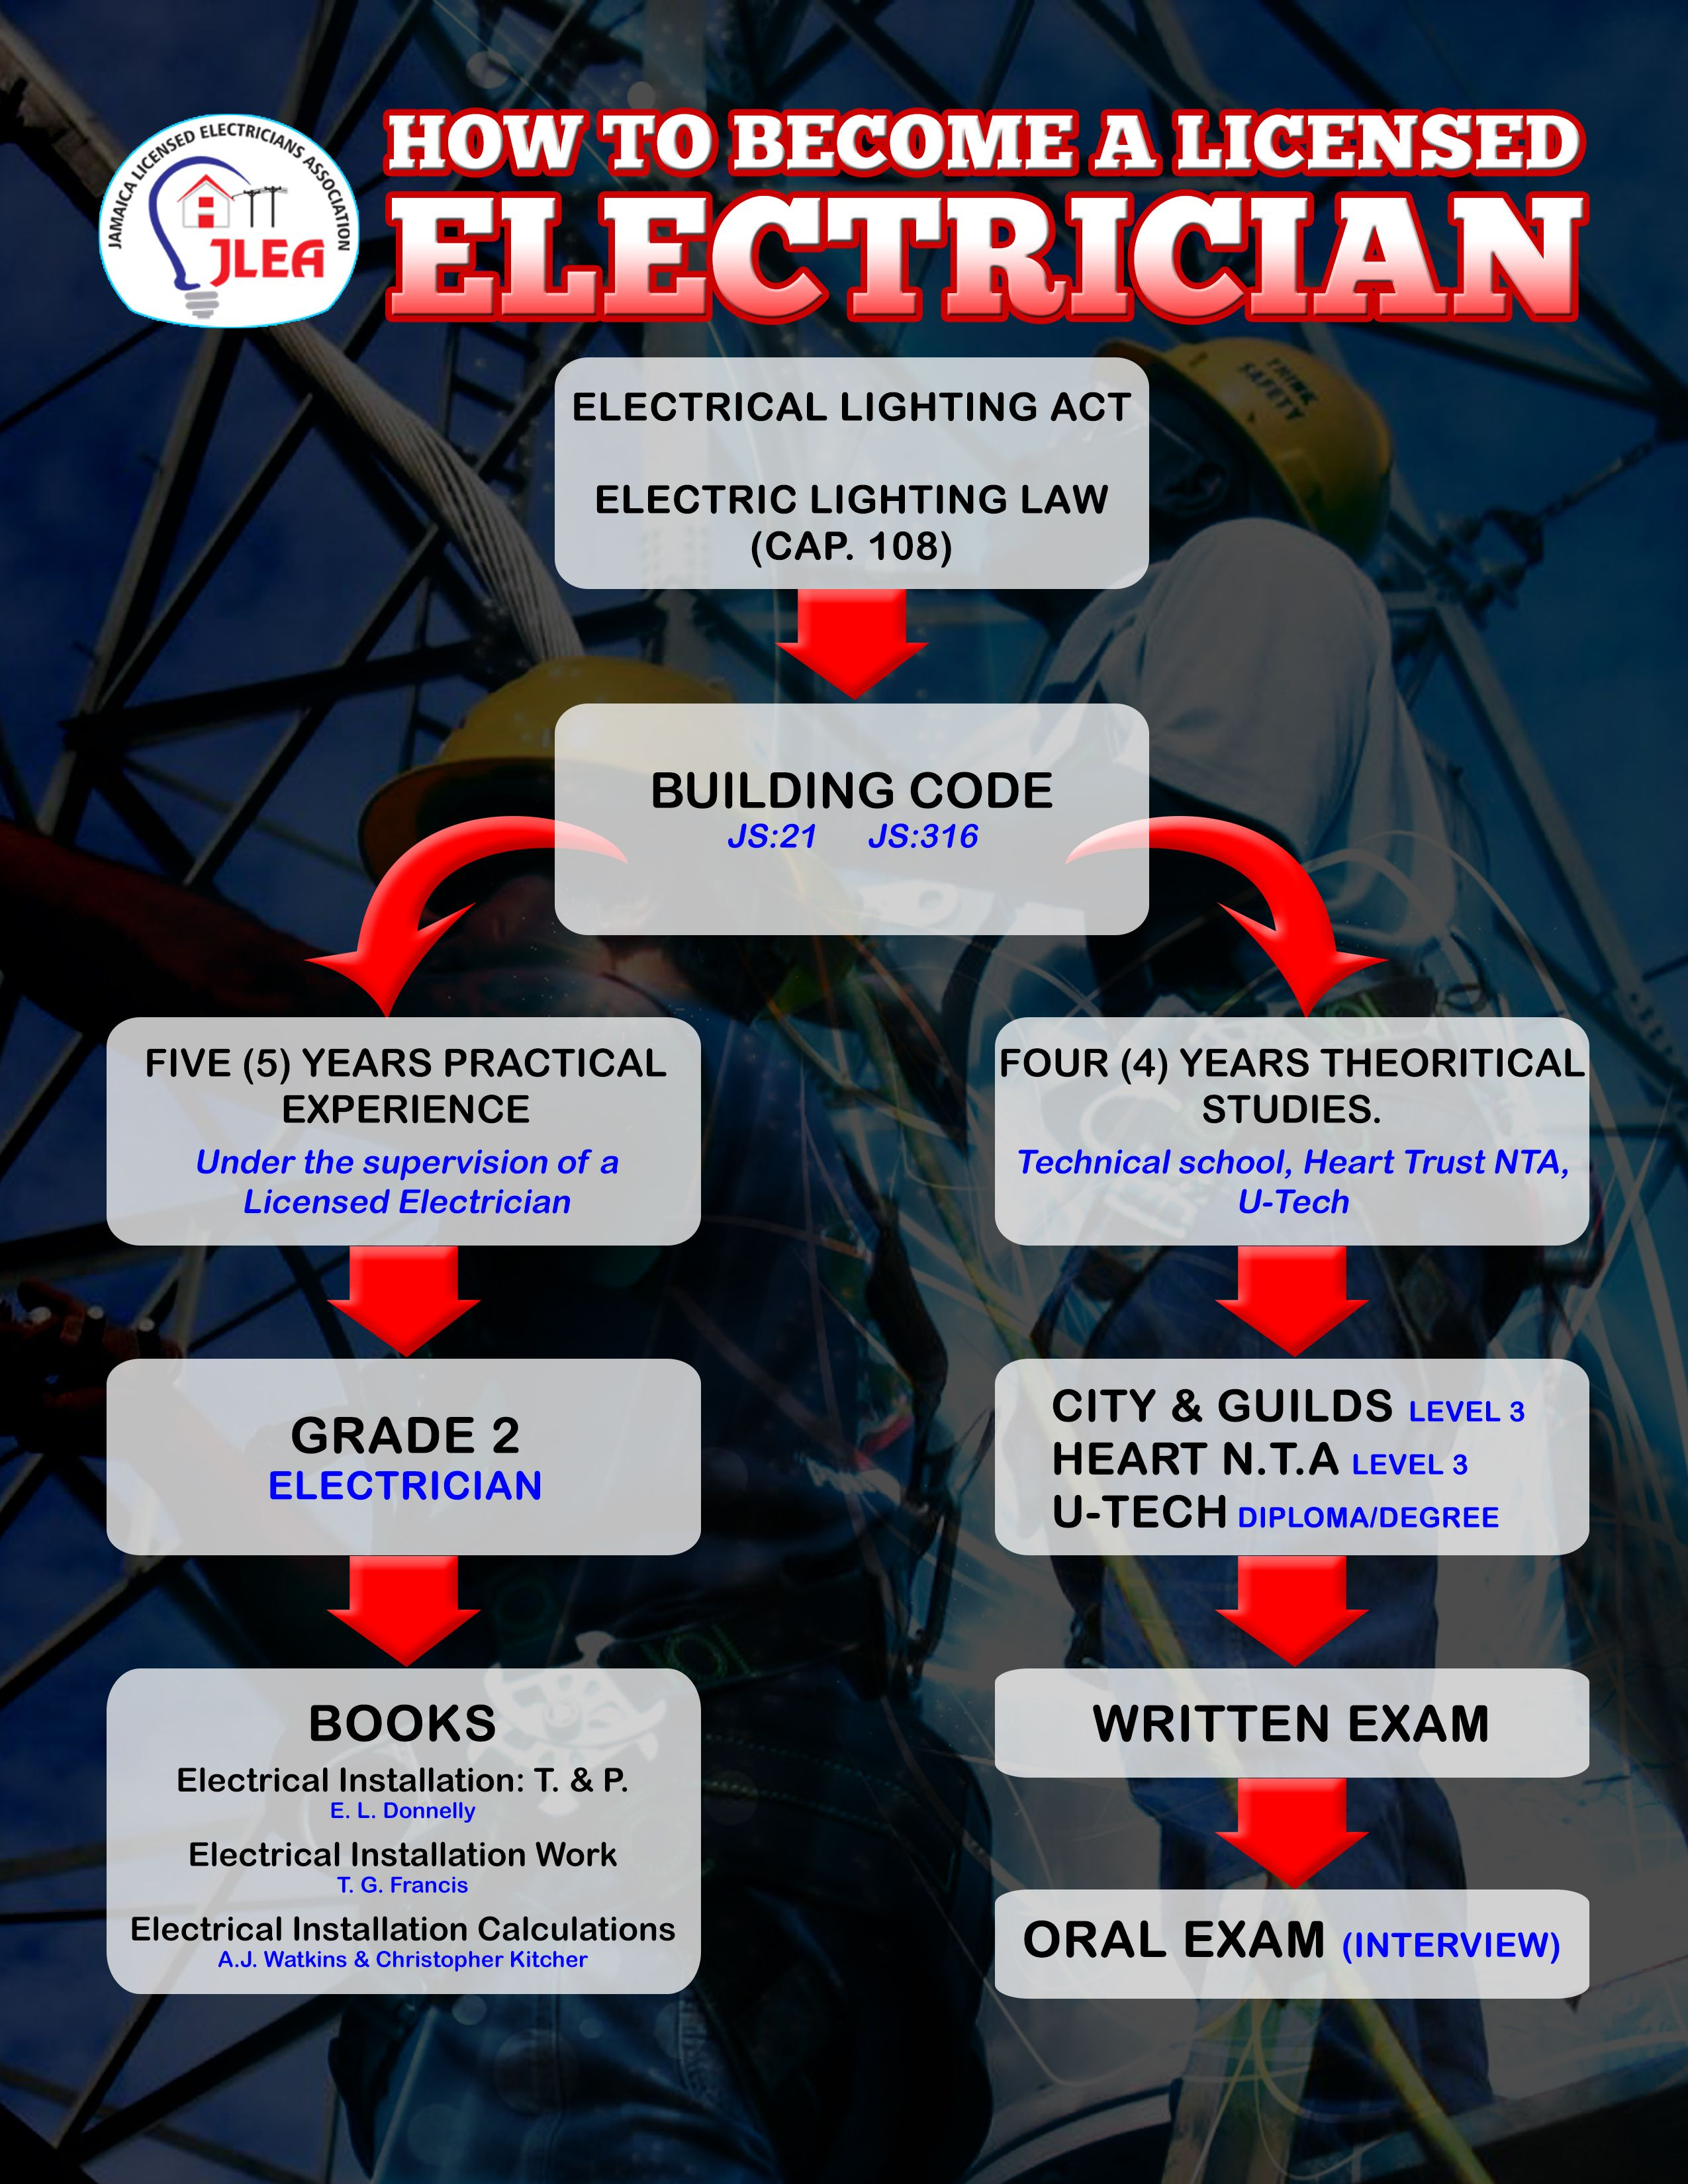 How to a licensed electrician electrician